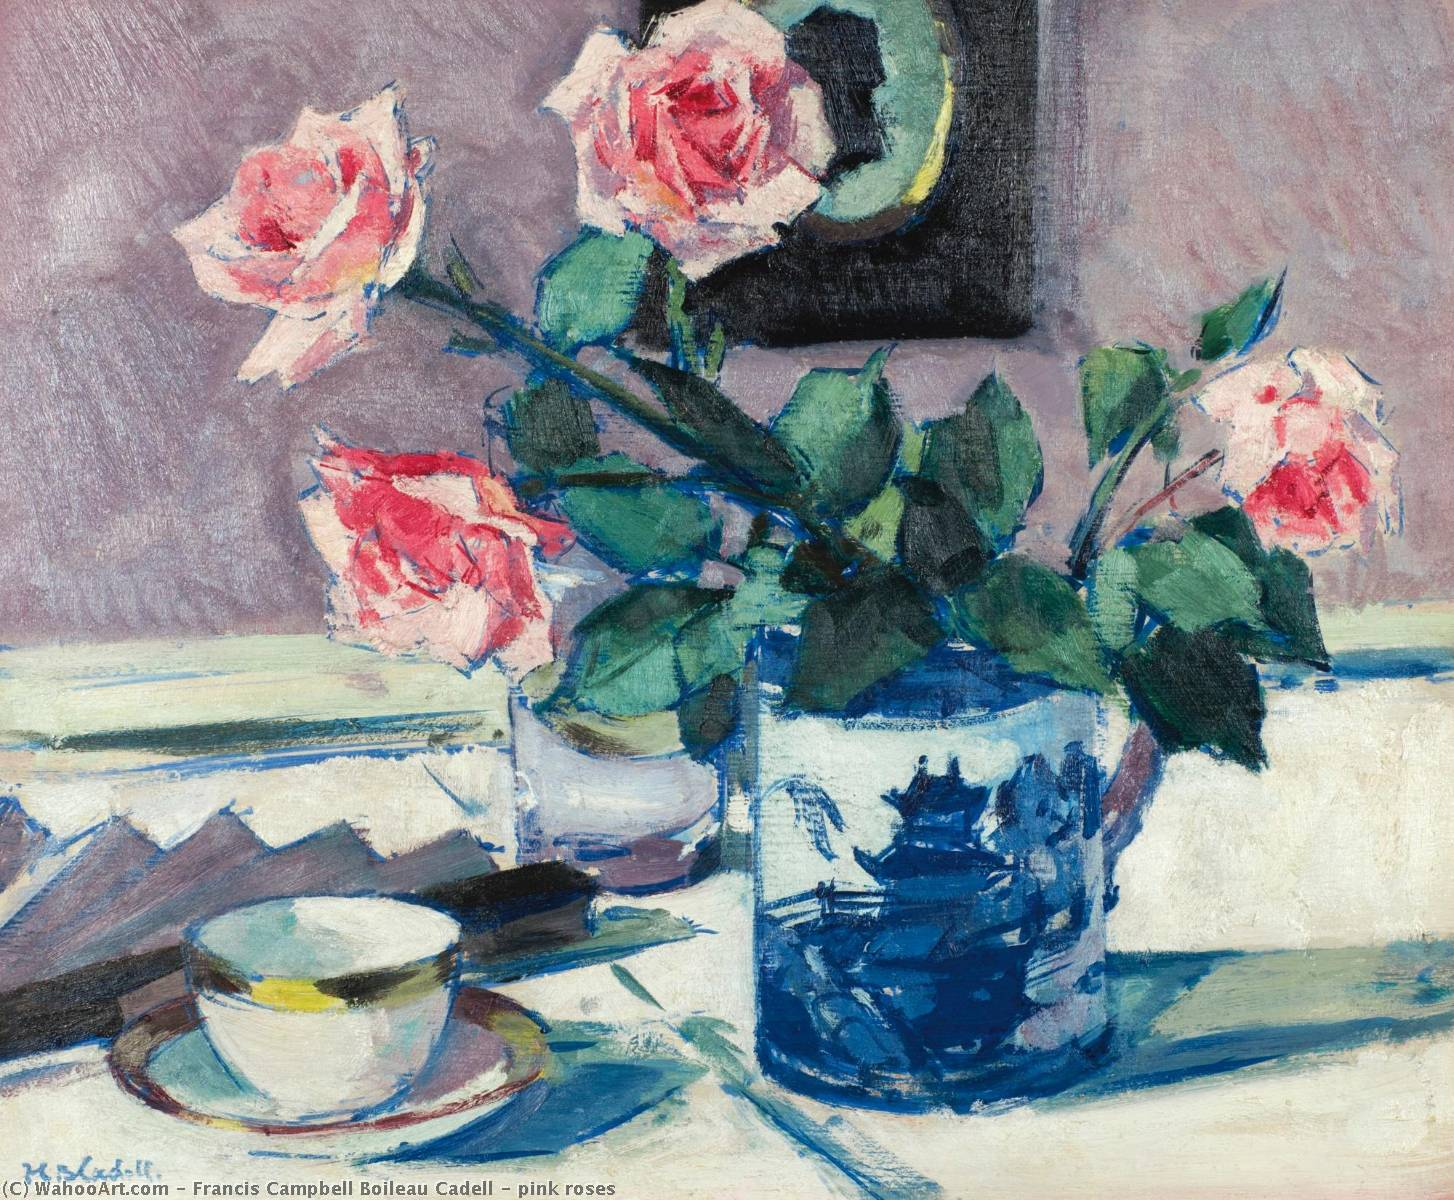 rose roses, Huile de Francis Campbell Boileau Cadell (1883-1937)